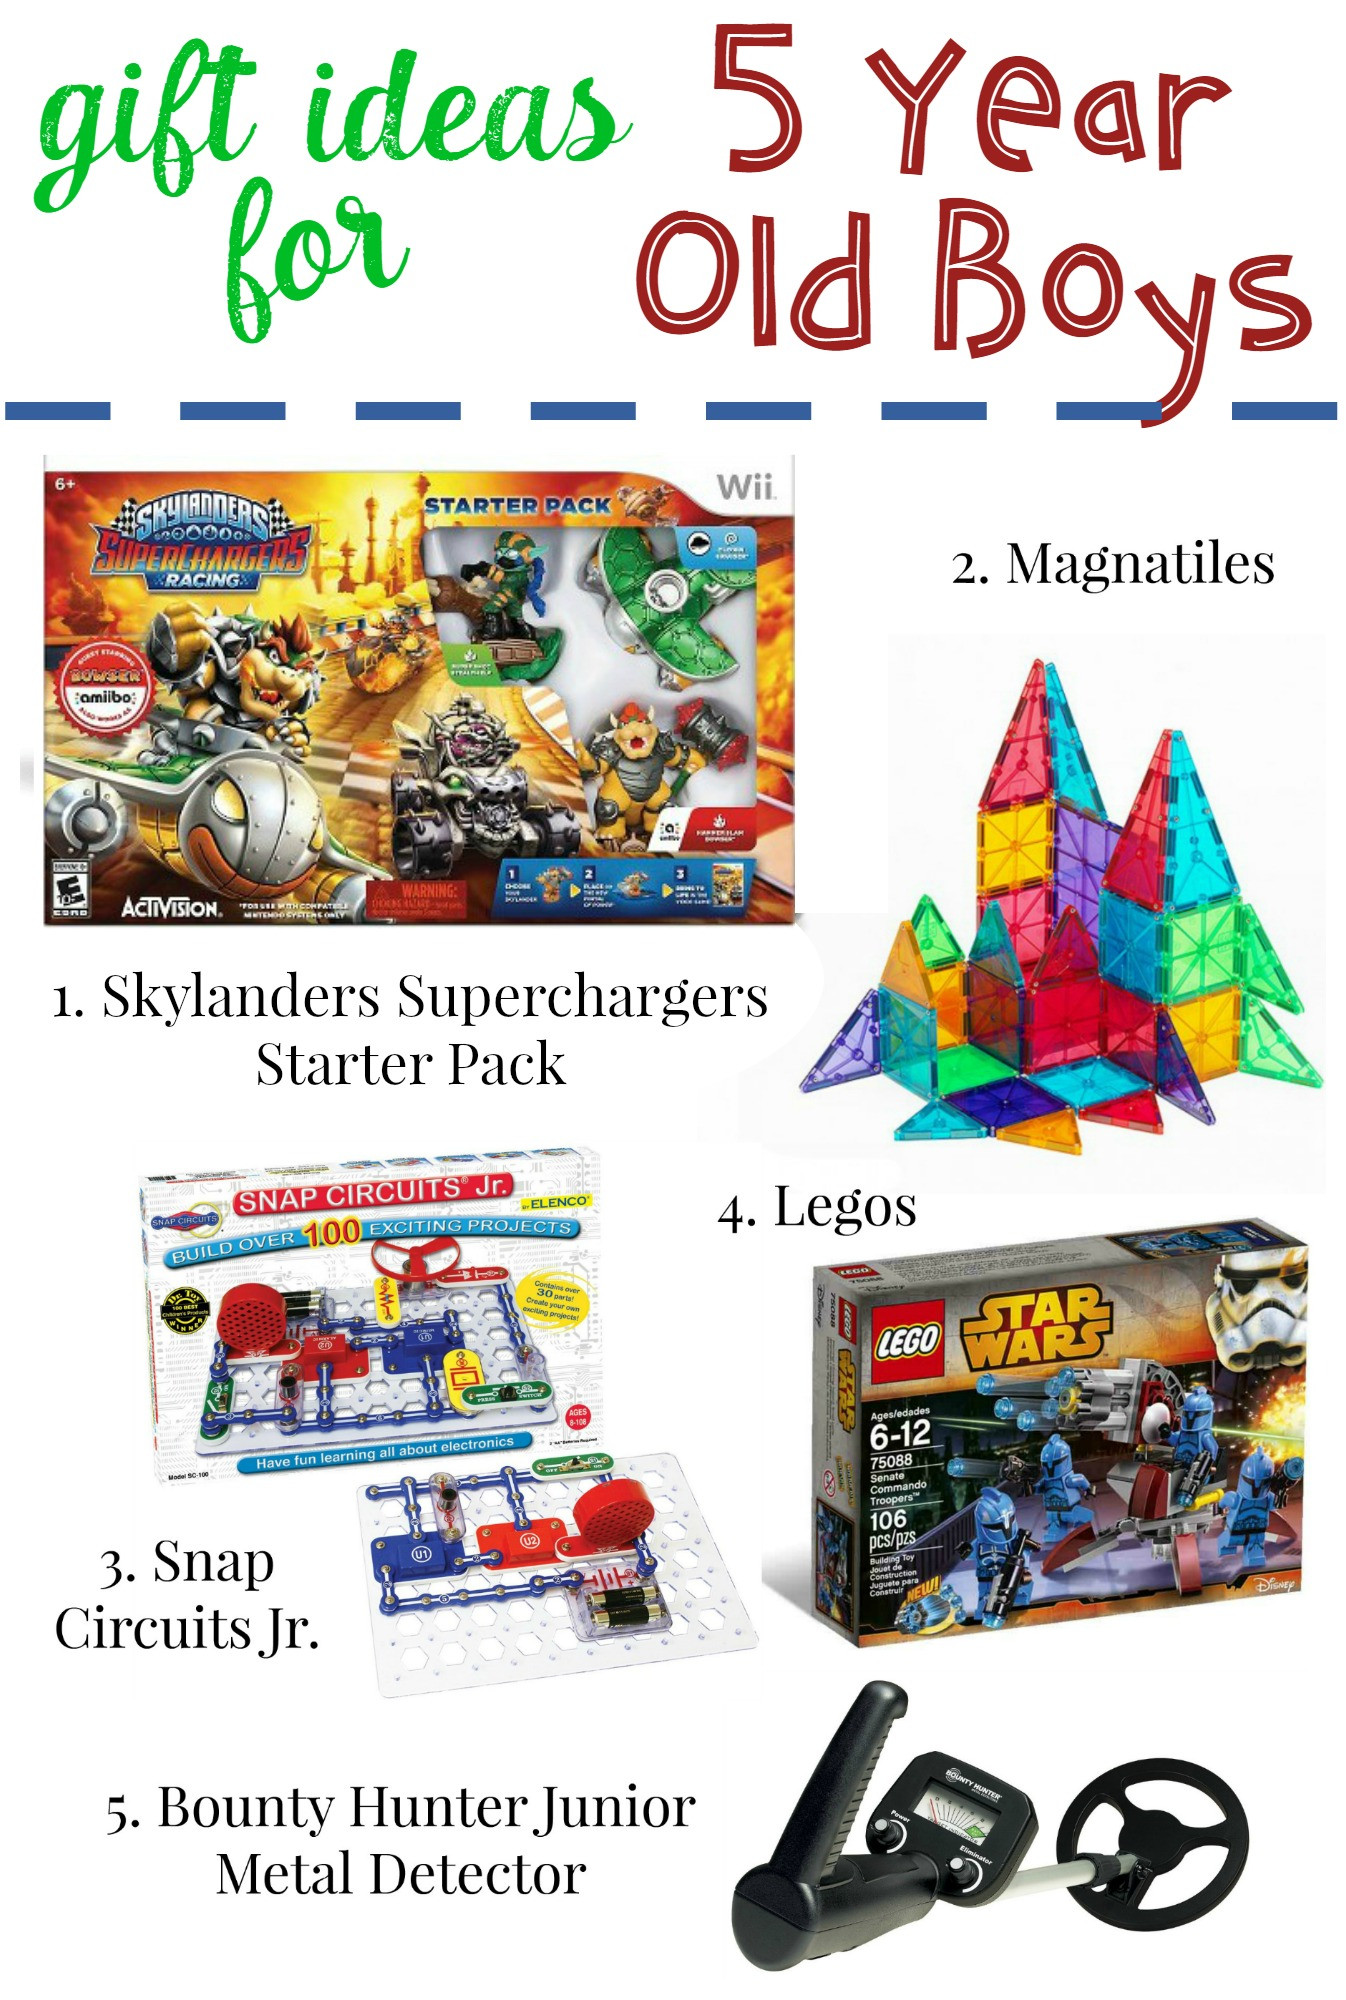 5 Year Old Boy Birthday Gift  Gifts for 5 Year Old Boys